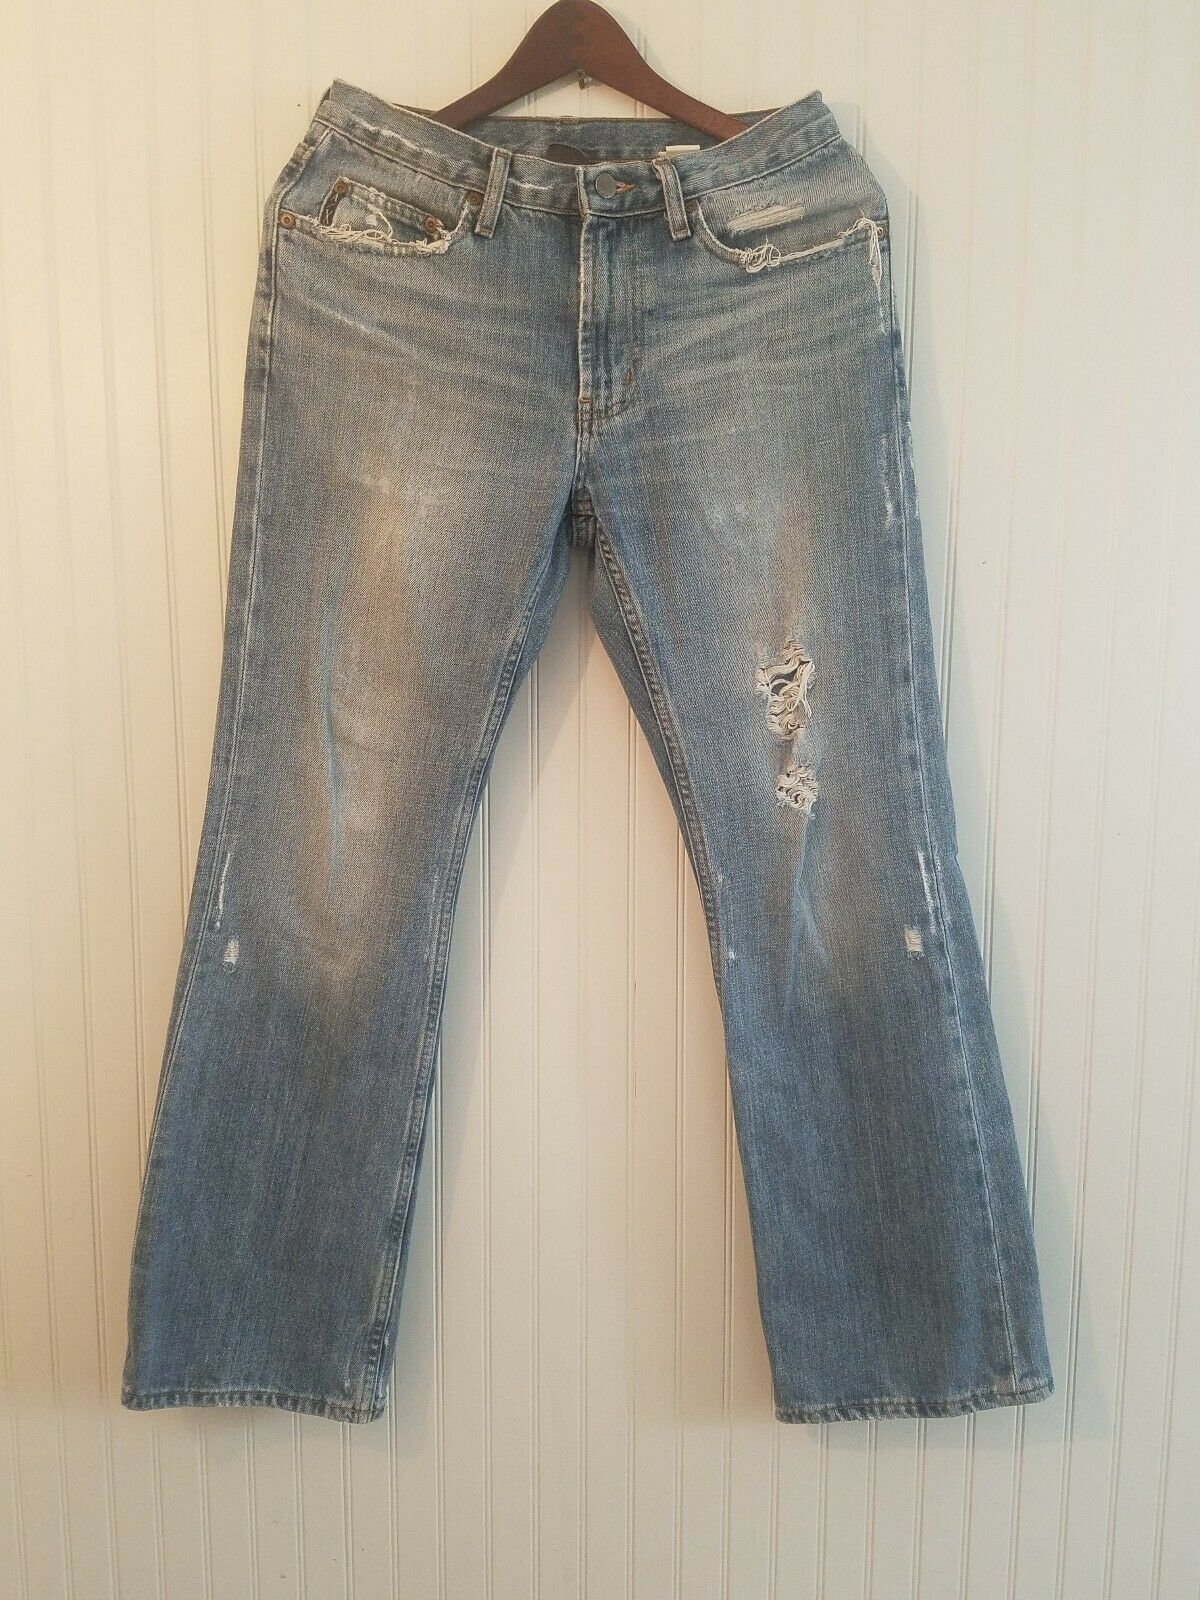 Armani Exchange A X Boot cut Distressed Jeans J101 29 x 30 ripped holes worn (E